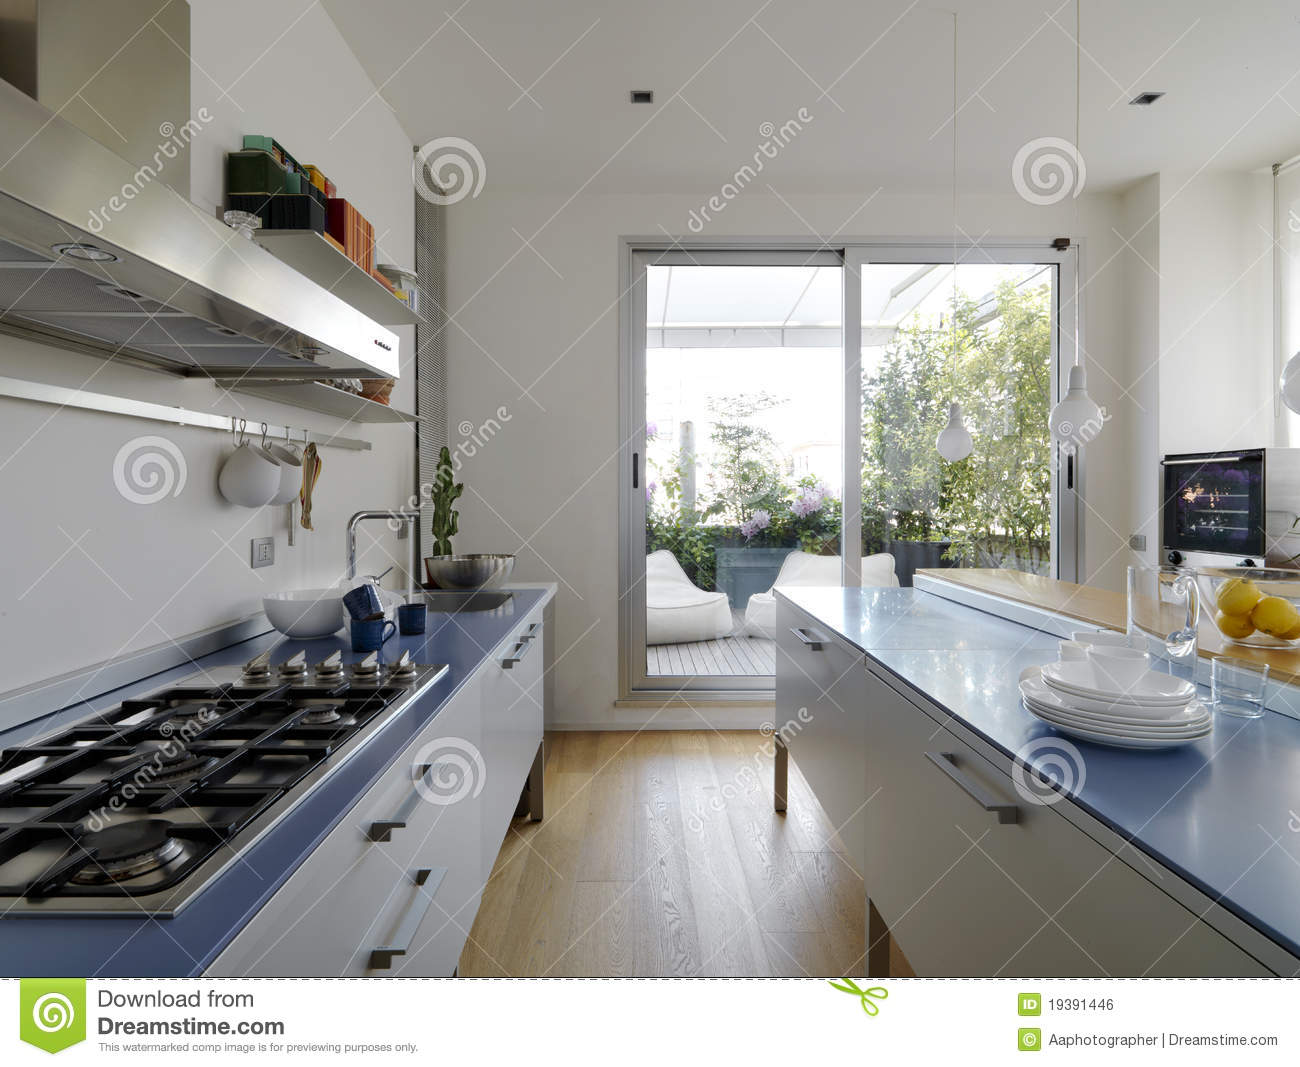 Cuisine moderne avec la terrasse photo stock image 19391446 for Salon de terrasse design